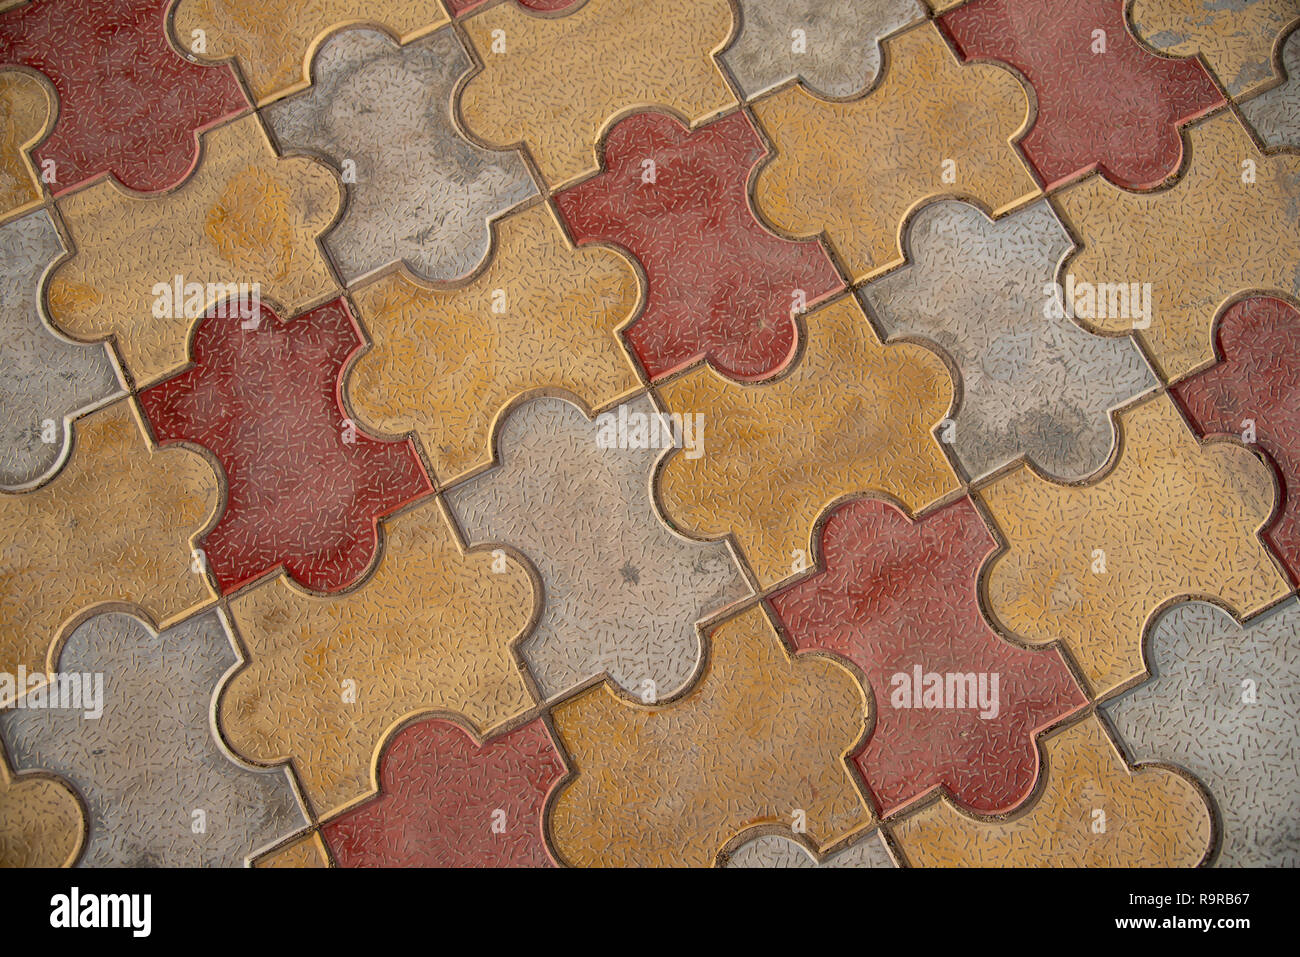 https www alamy com jigsaw floor tiles each vibrant floor tile fitting together like a puzzle piece oxford shape image229780383 html